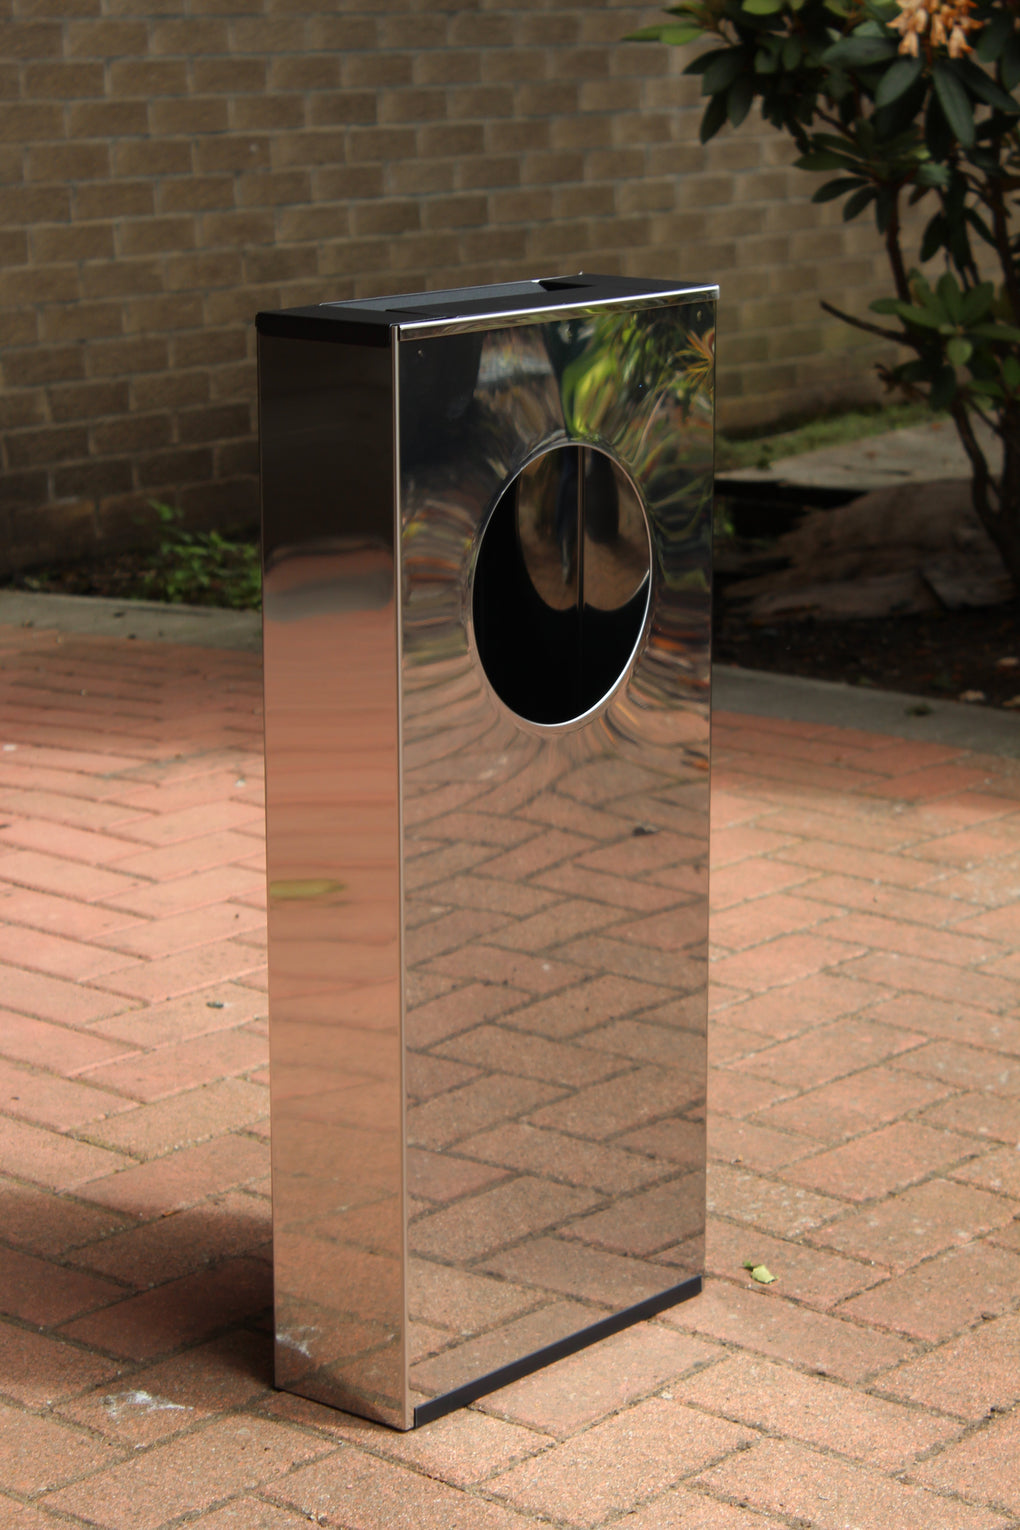 Free Standing S/S Combi Waste Bin/Ashtray ASHT-SS || Stainless Steel